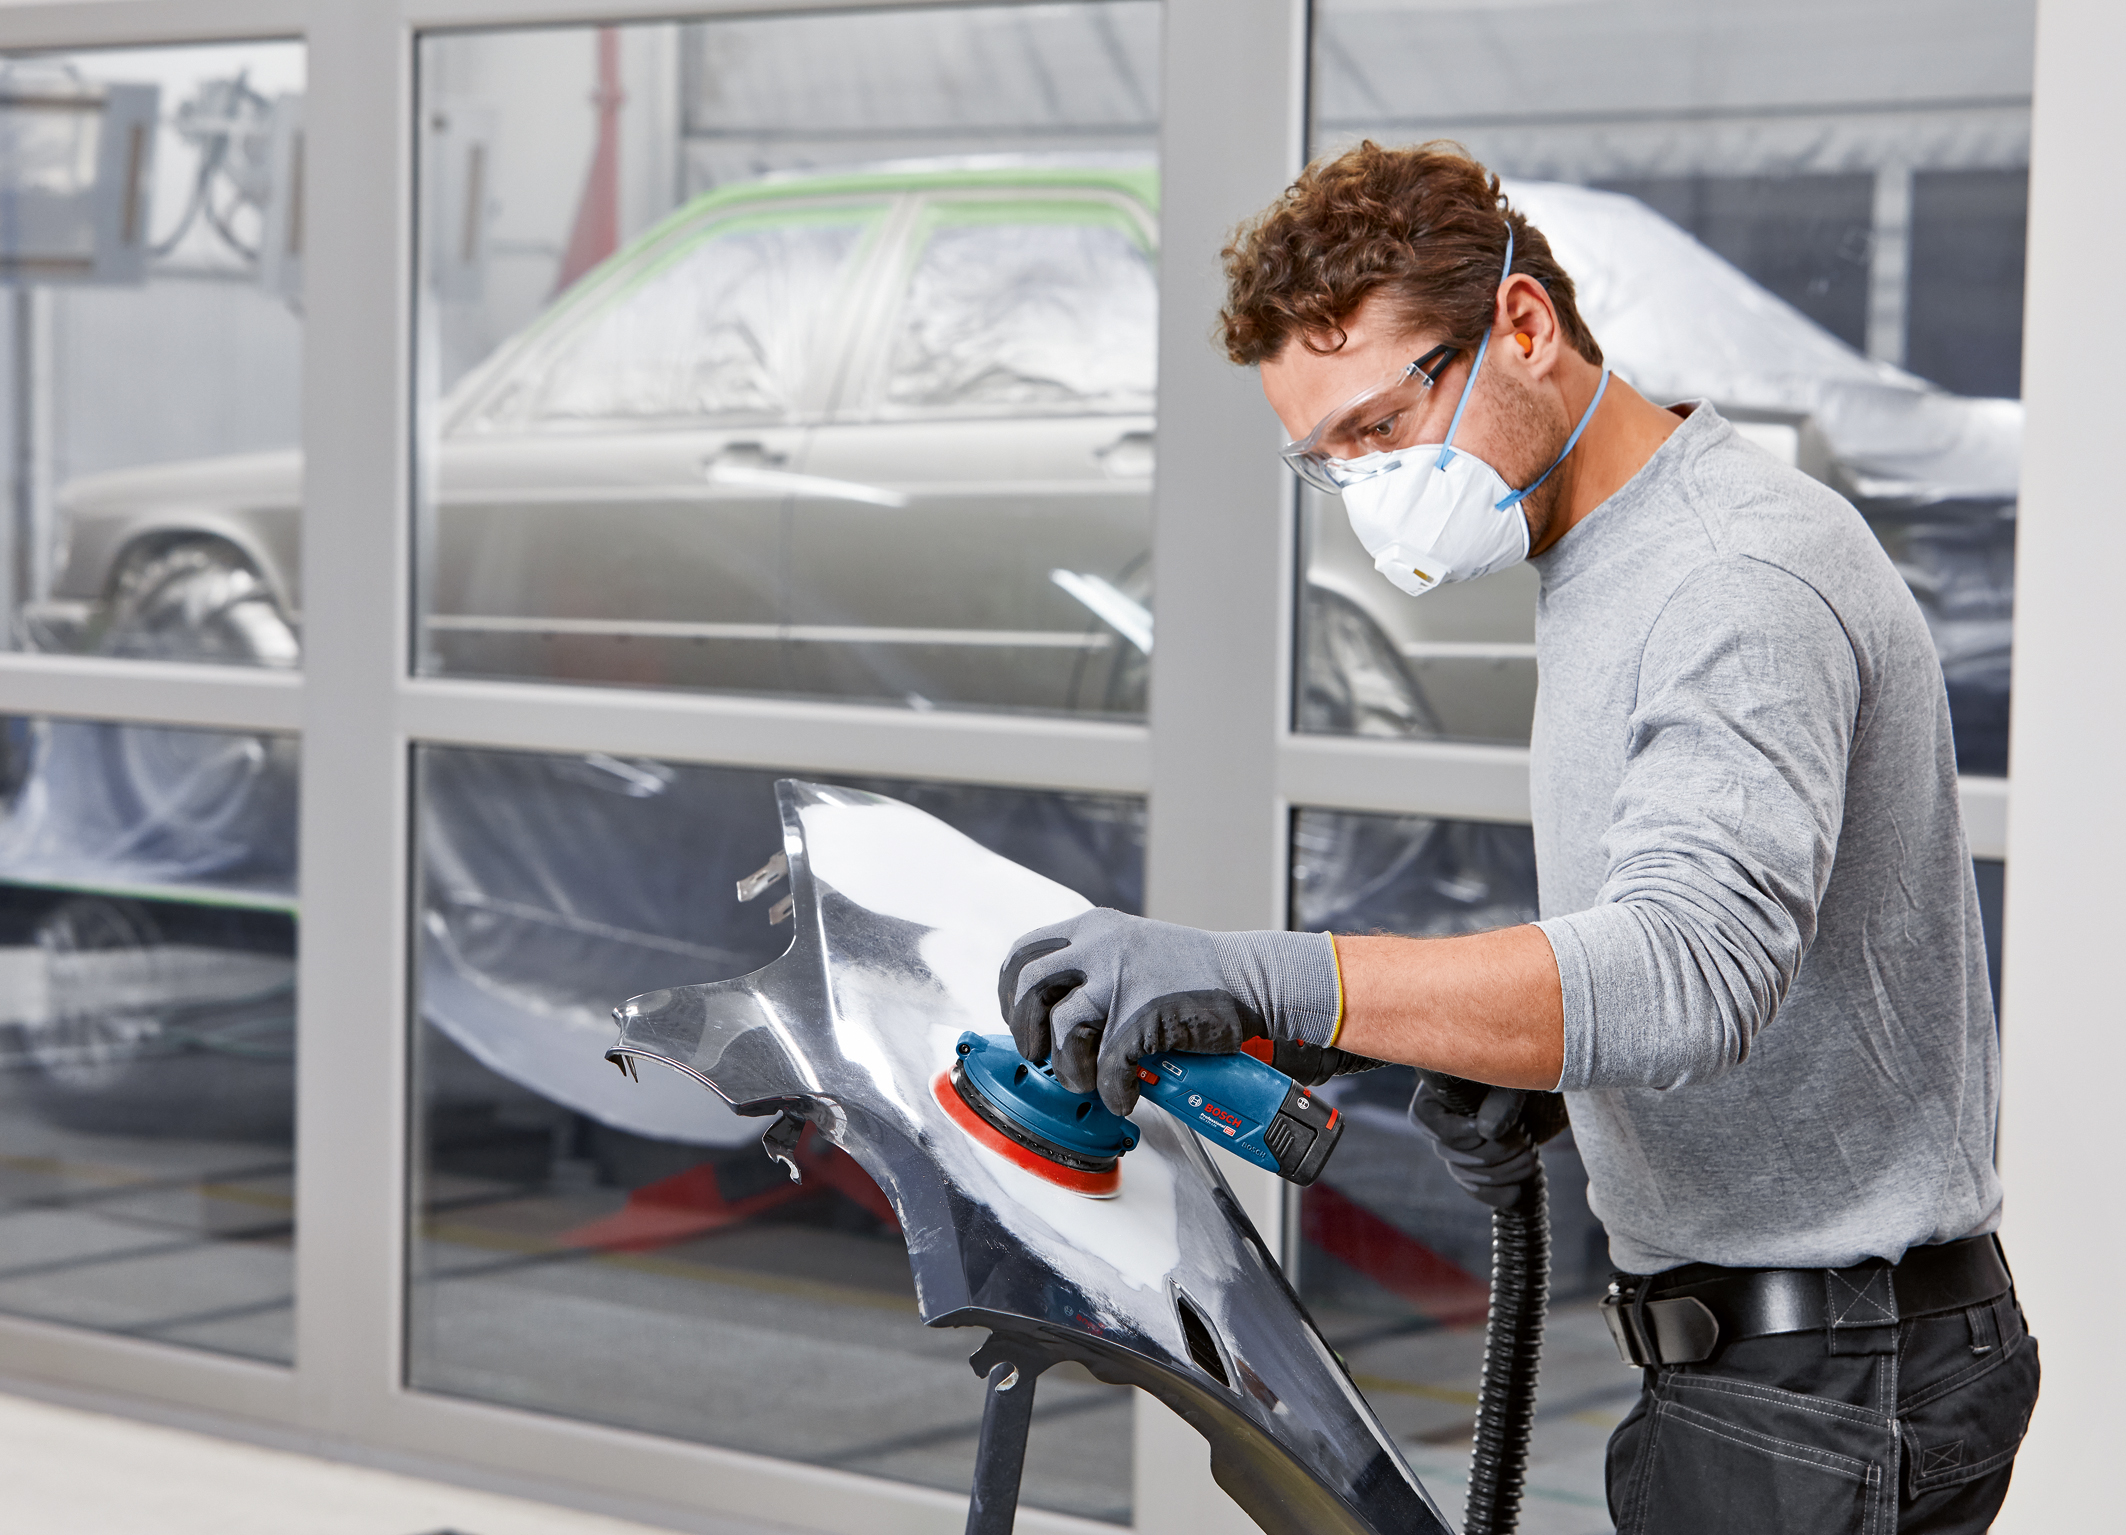 Flexible in use from coarse sanding to finishing: The first Bosch cordless random orbit sanders for pros